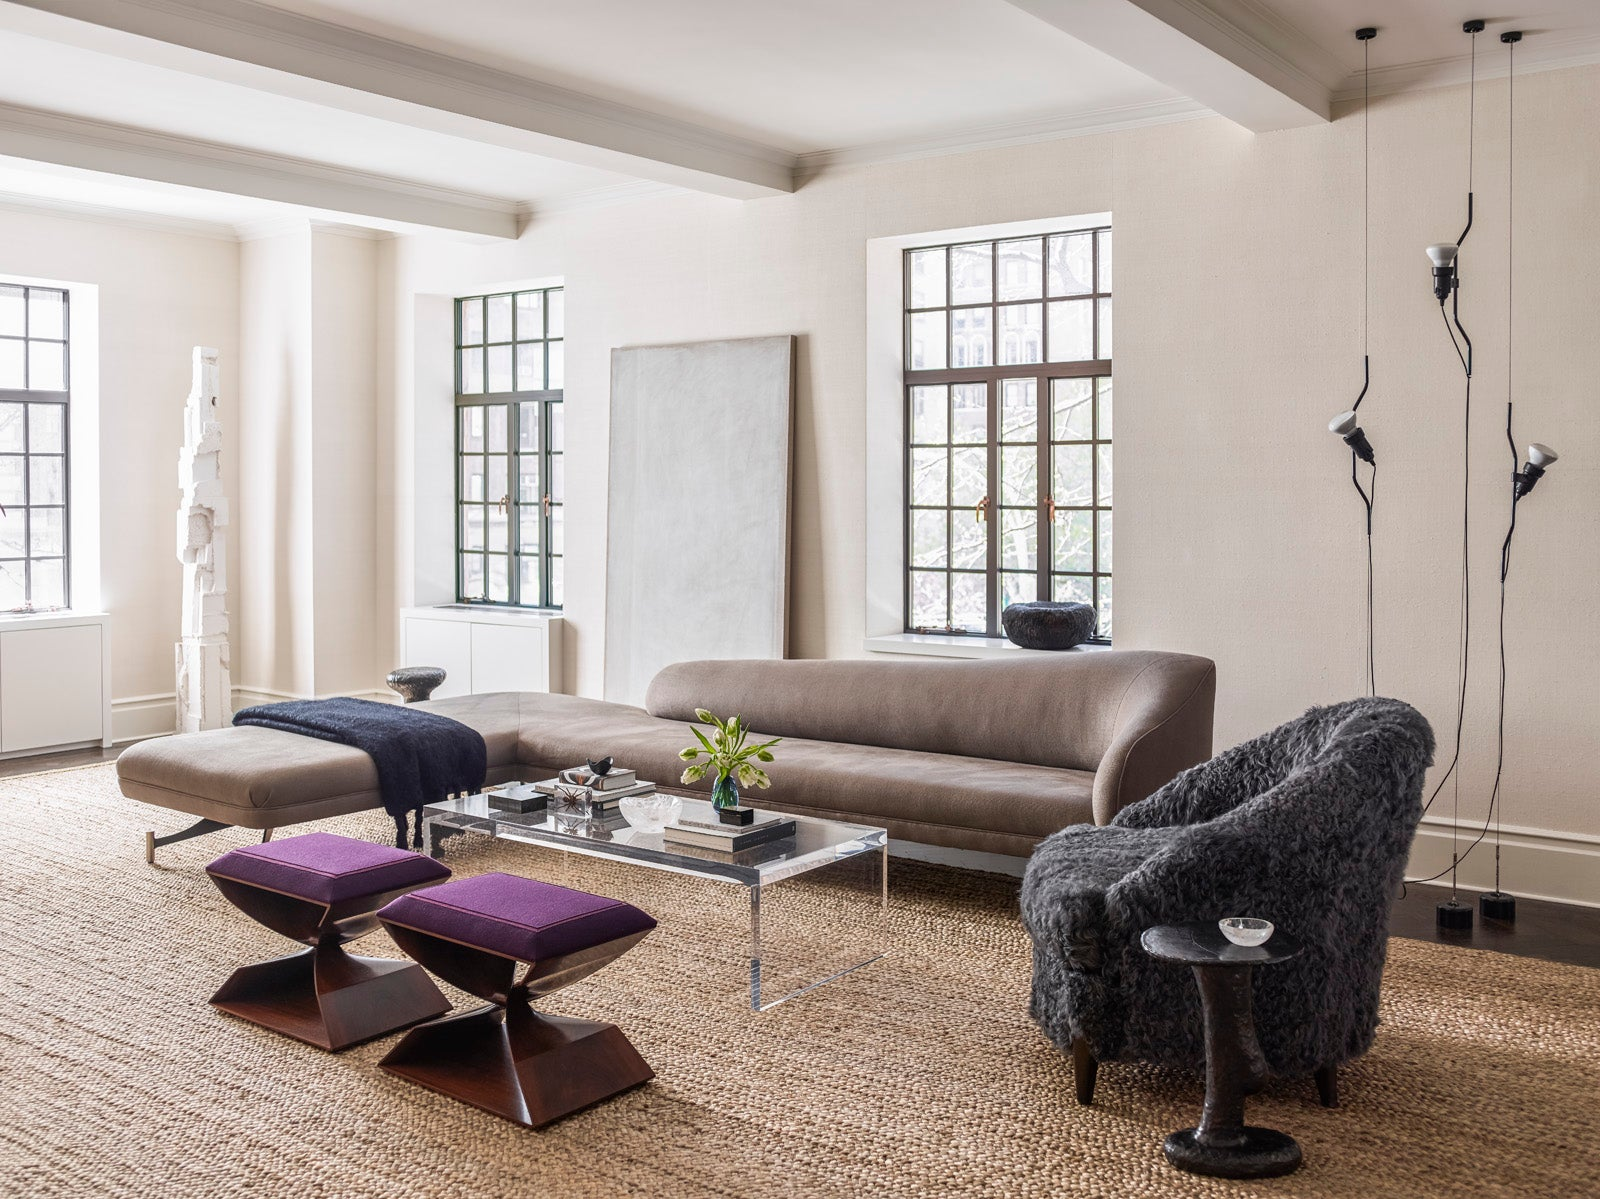 Living Room by MR Architecture + Decor on 1stdibs